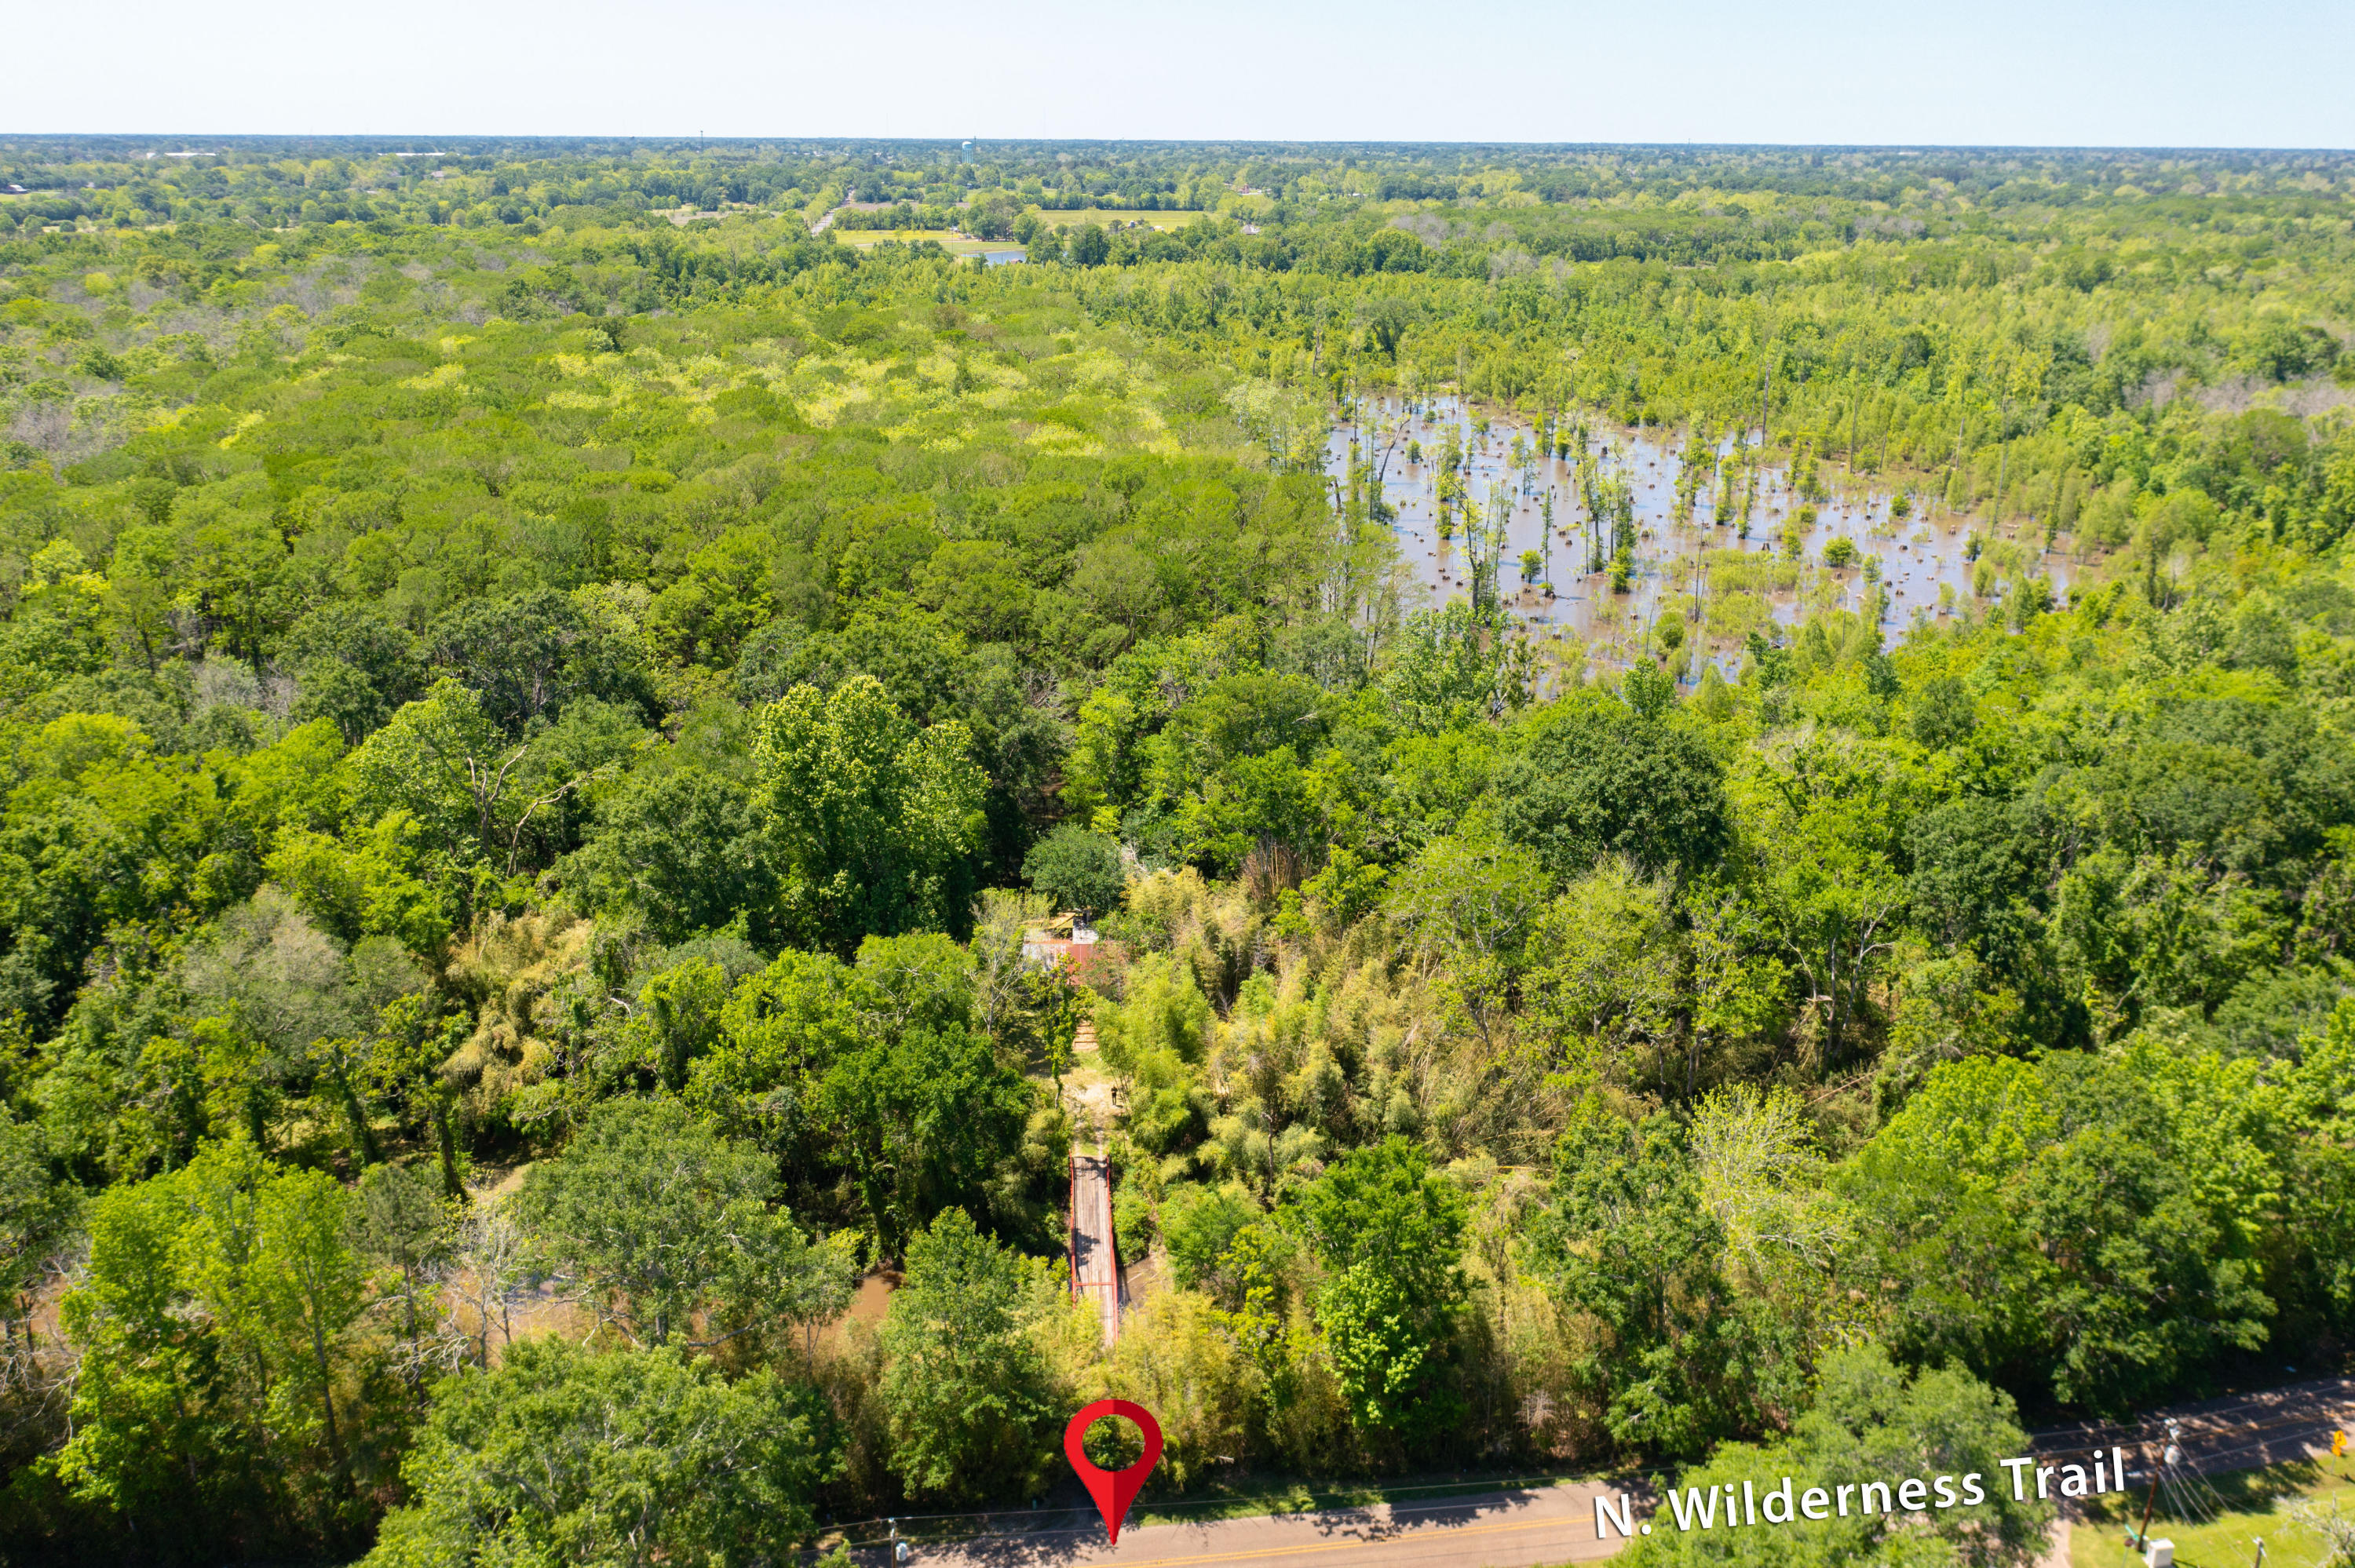 1225 Wilderness Trail N, Carencro, LA 70520 Photo #28